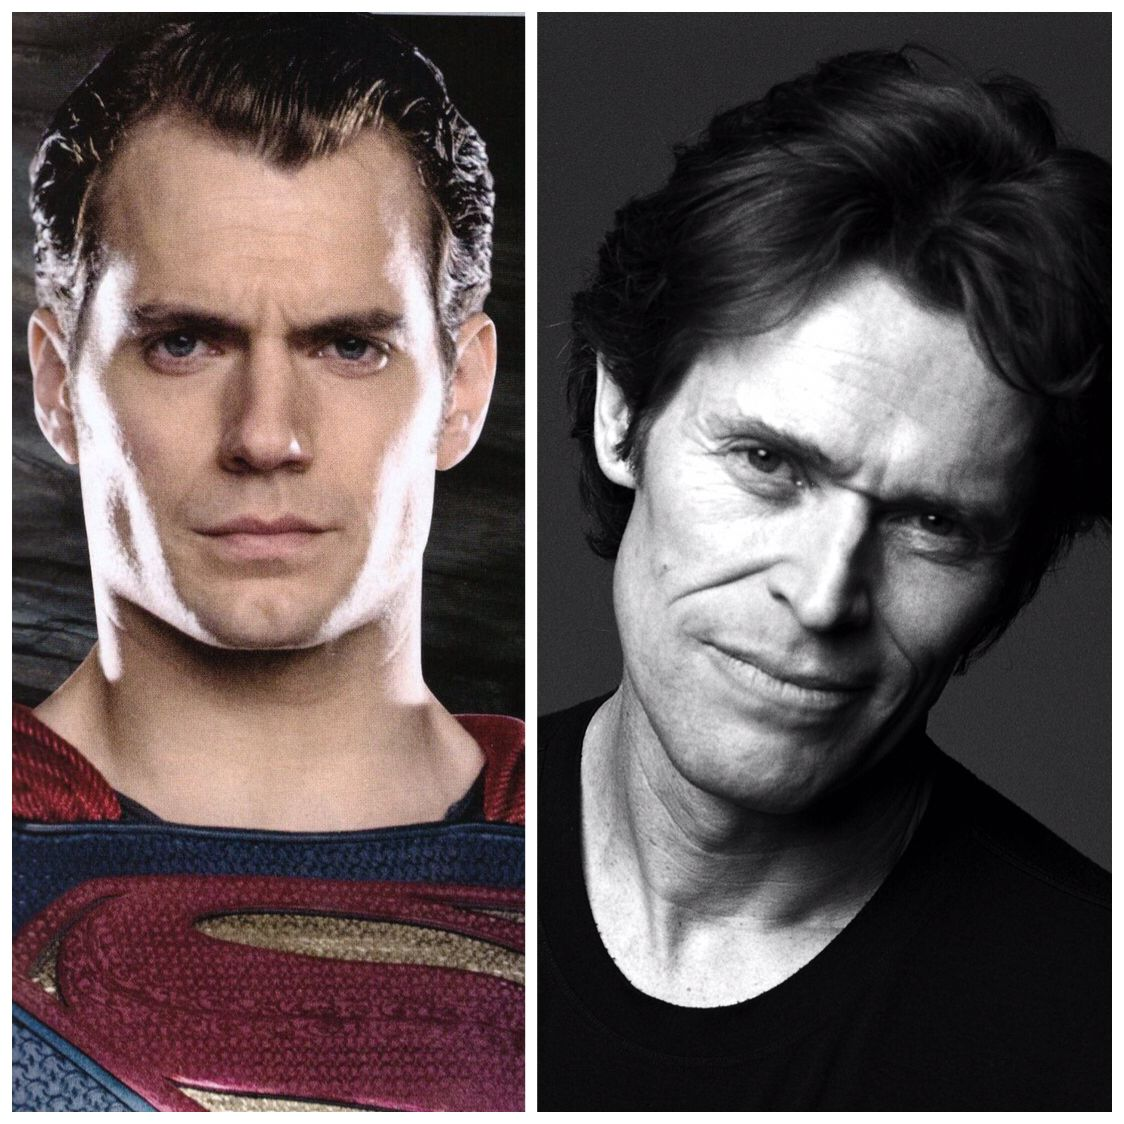 #WillemDafoe joins @HenryCavill in #JusticeLeague, and he's supposed to be playing a good guy! bit.ly/1NkFuFW #Superman #CoStar #Filming #London #ManofSteel #DawnofJustice #BatmanvSuperman #DC #WarnerBros #HenryCavill